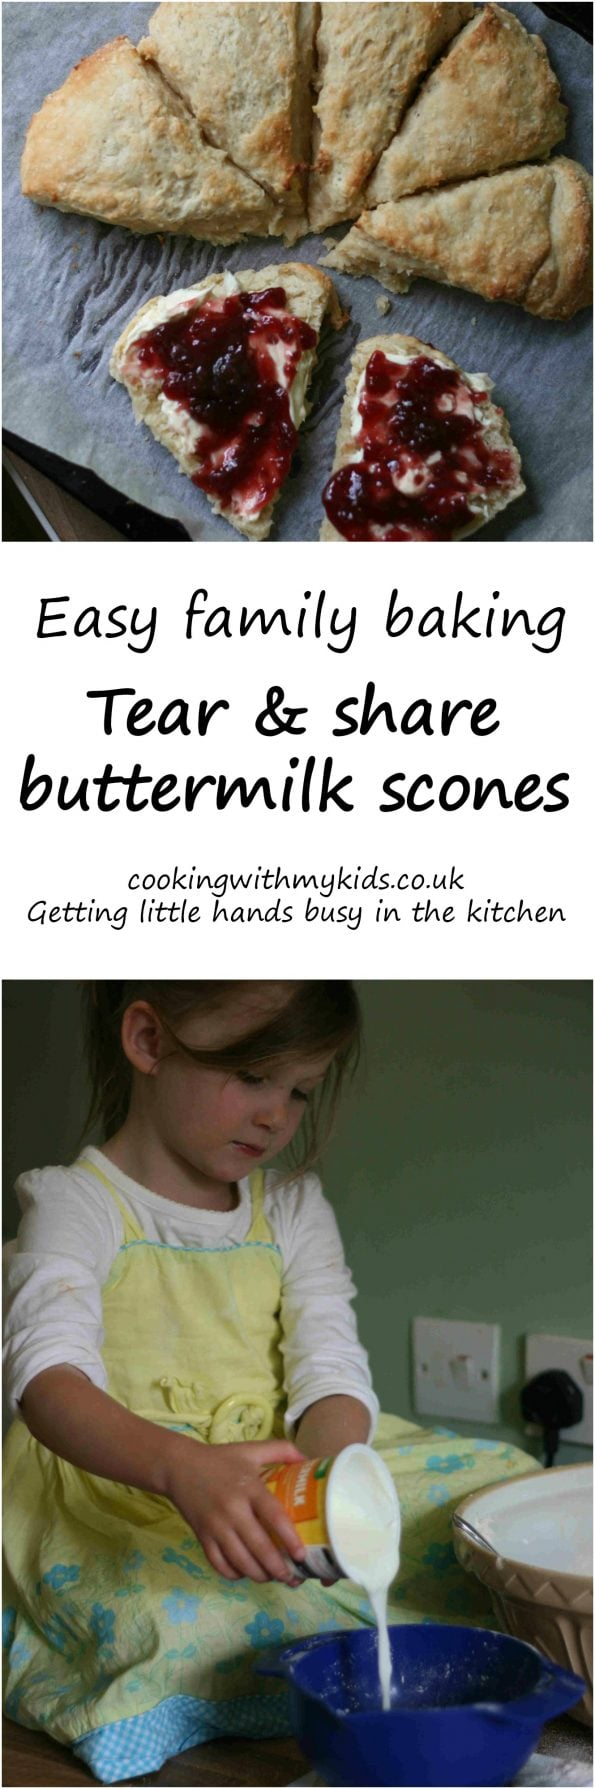 tear and share buttermilk scones